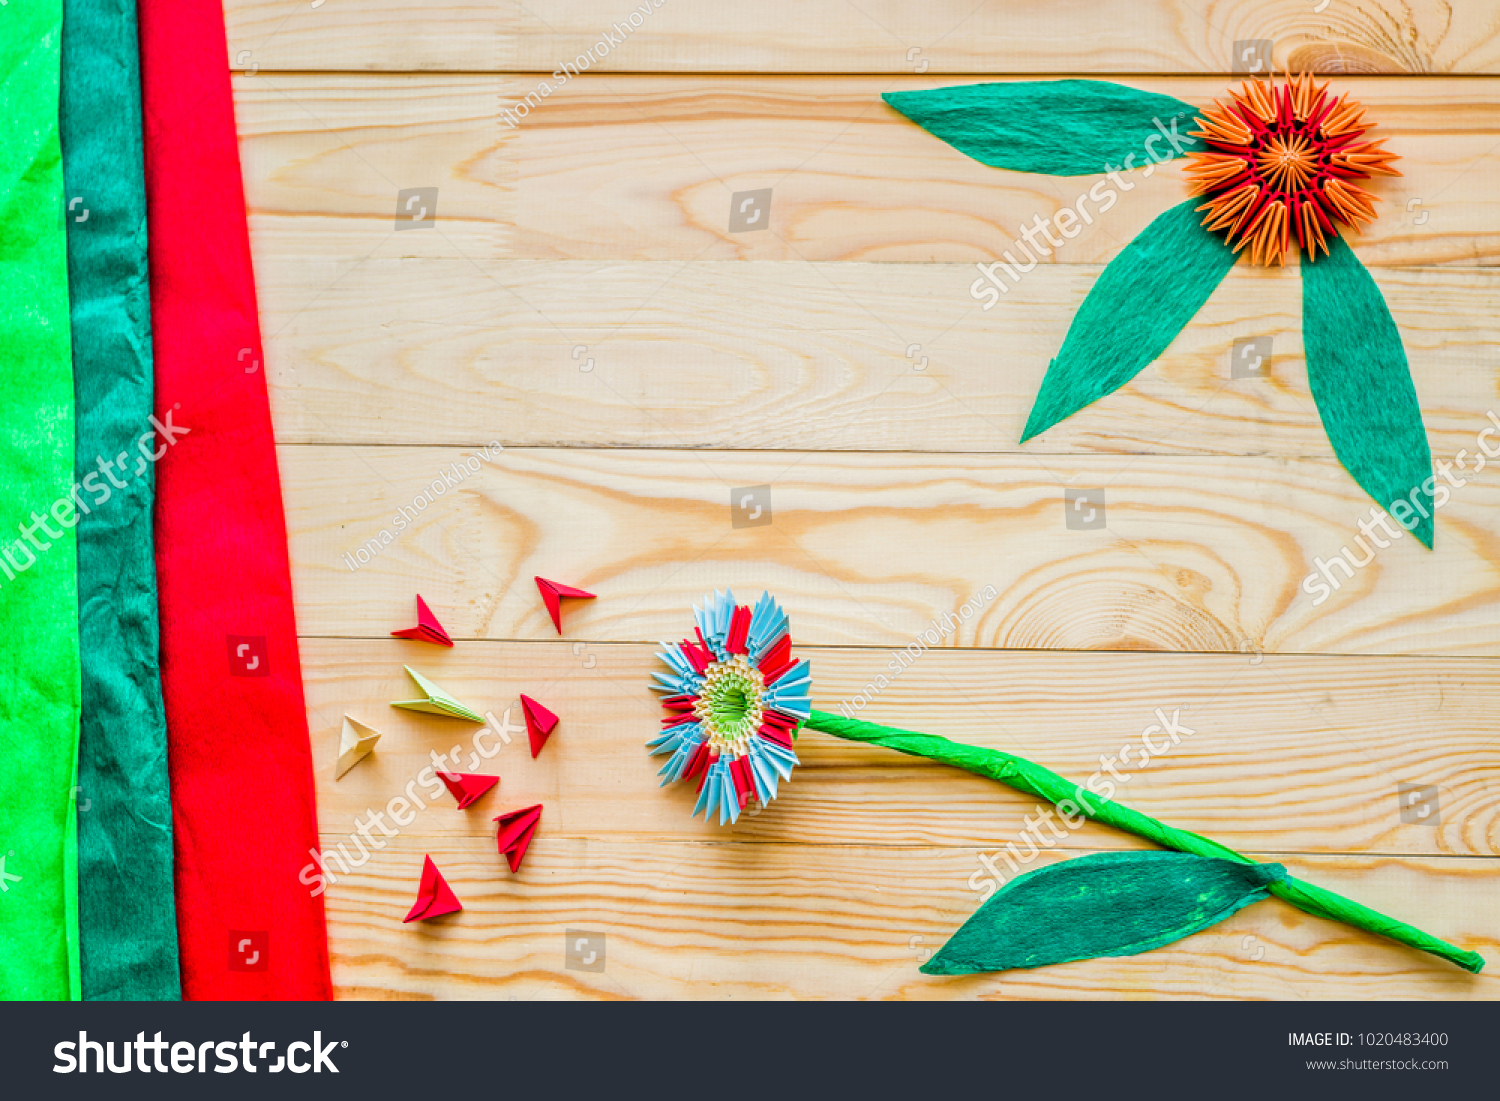 Modular Origami Flowers On Rustic Wooden Stock Photo Royalty Free